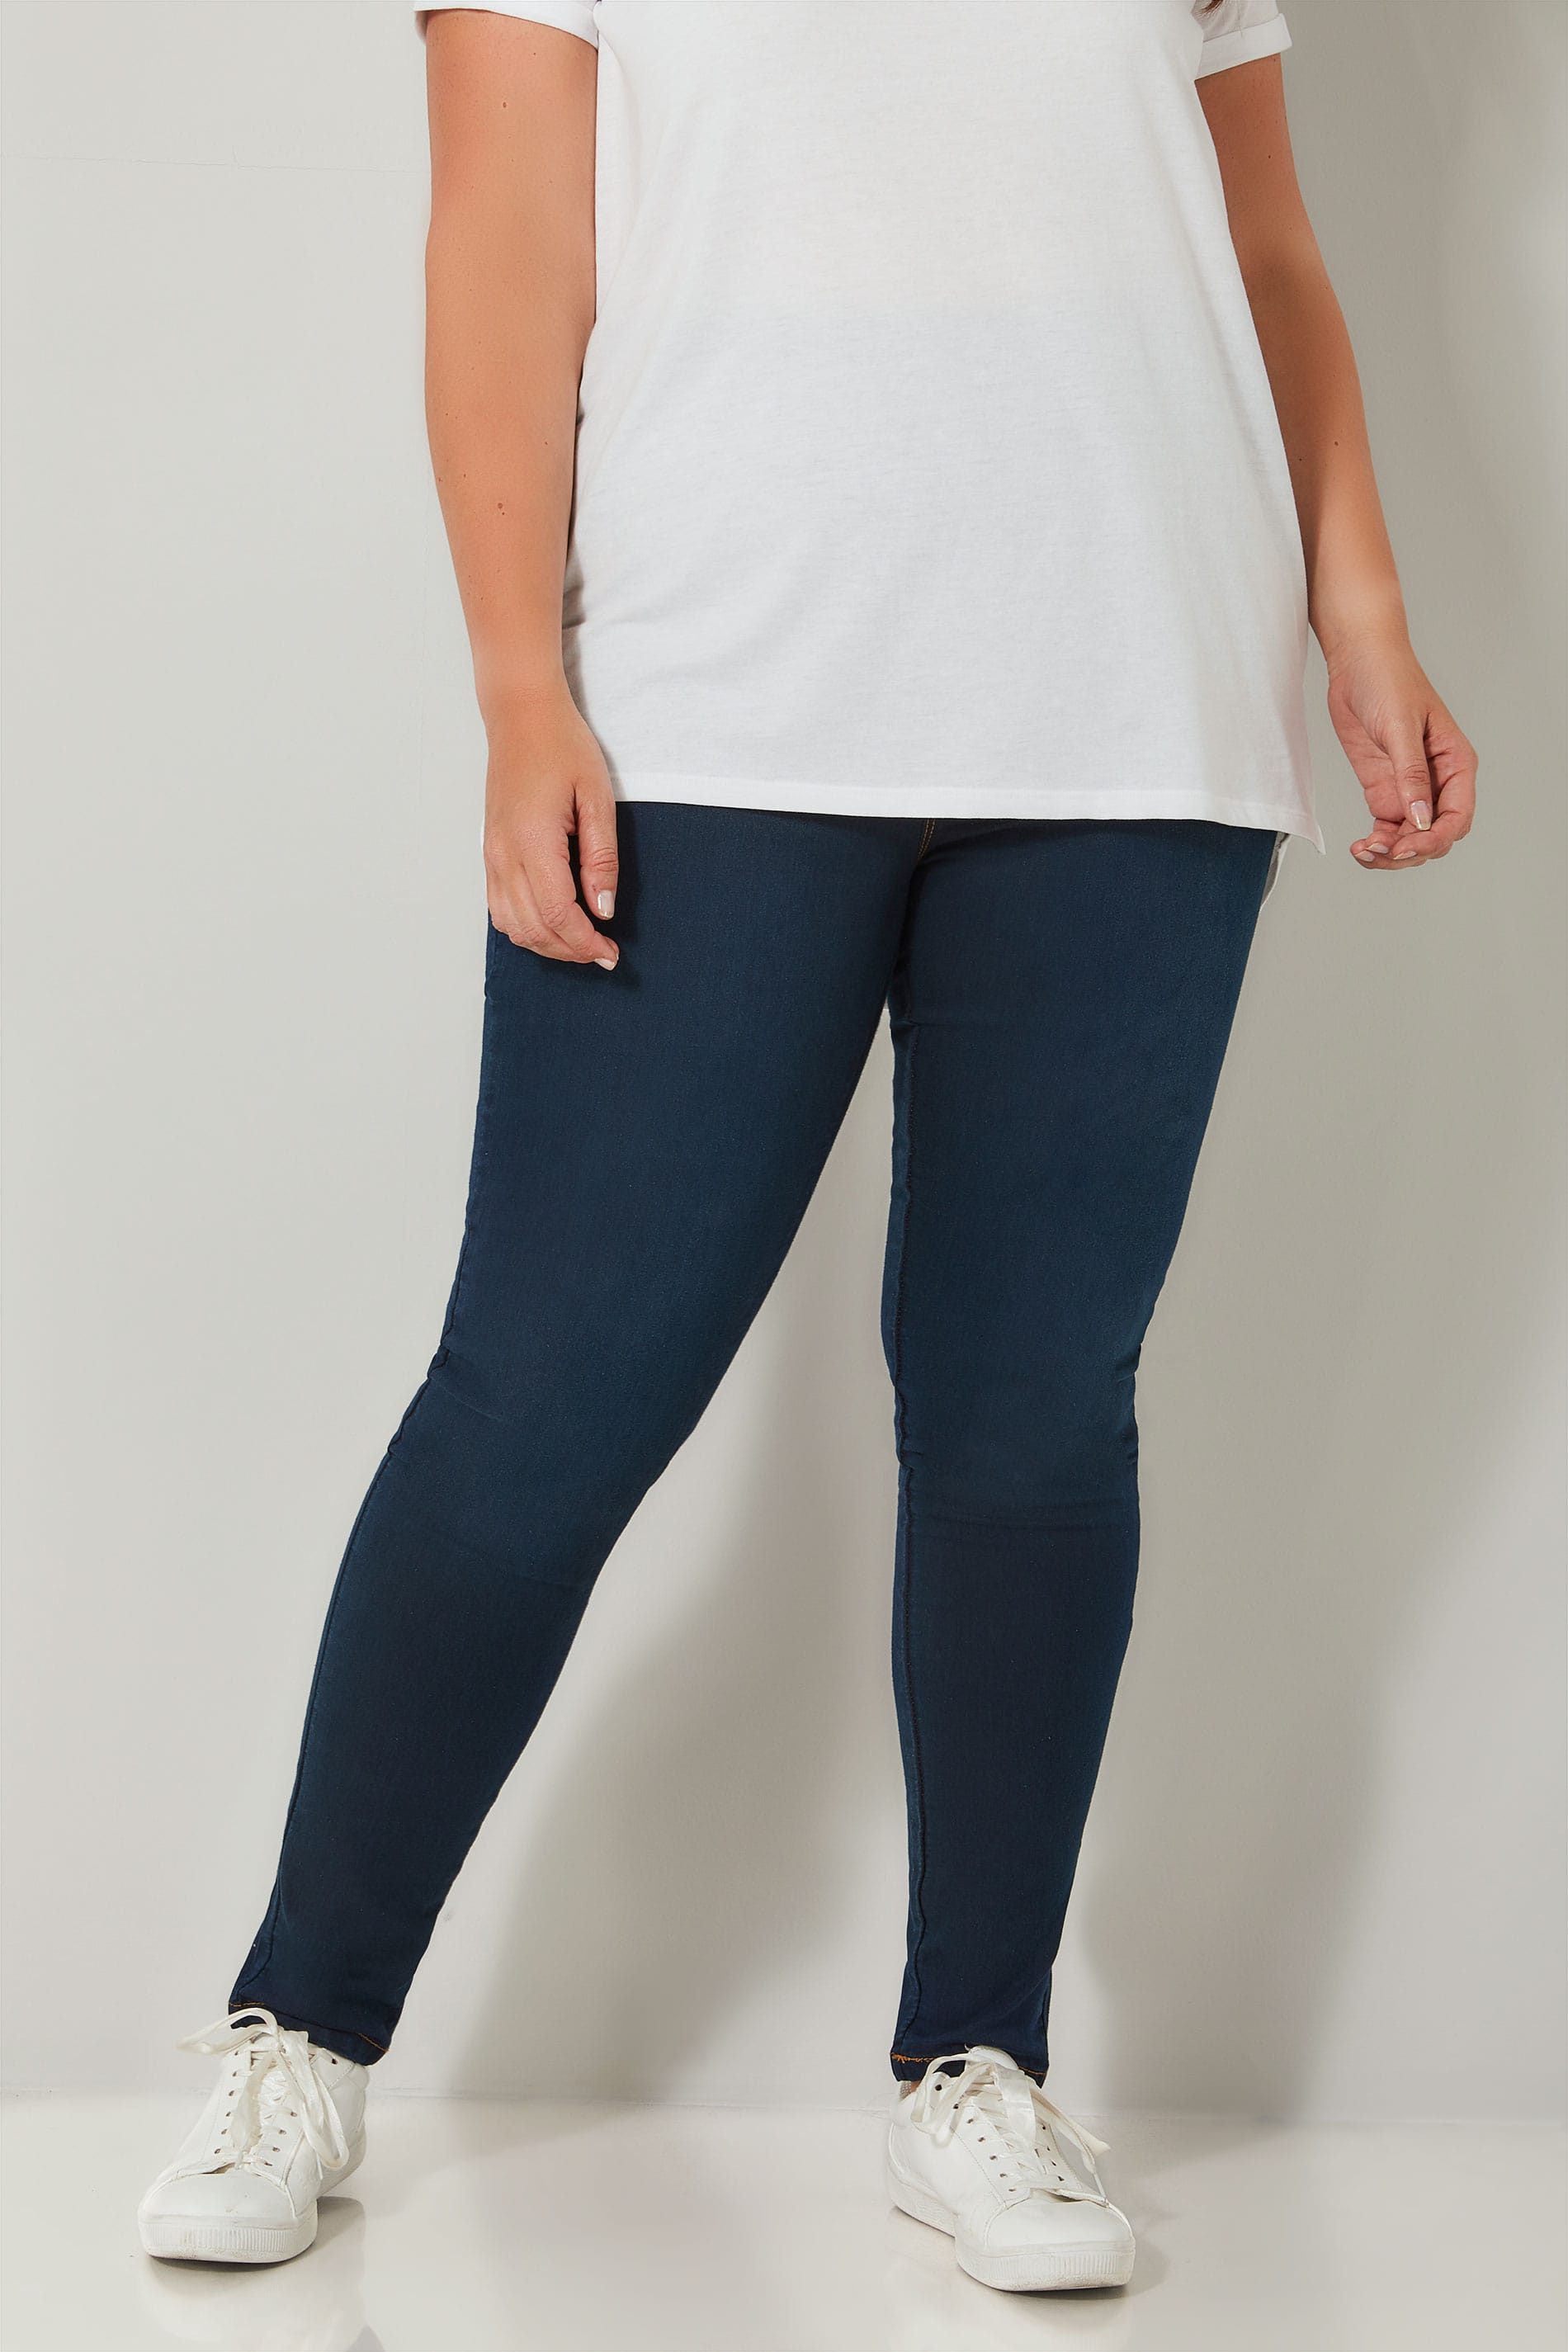 Rooms: Indigo Blue Pull On JENNY Jeggings Plus Size 14 To 36